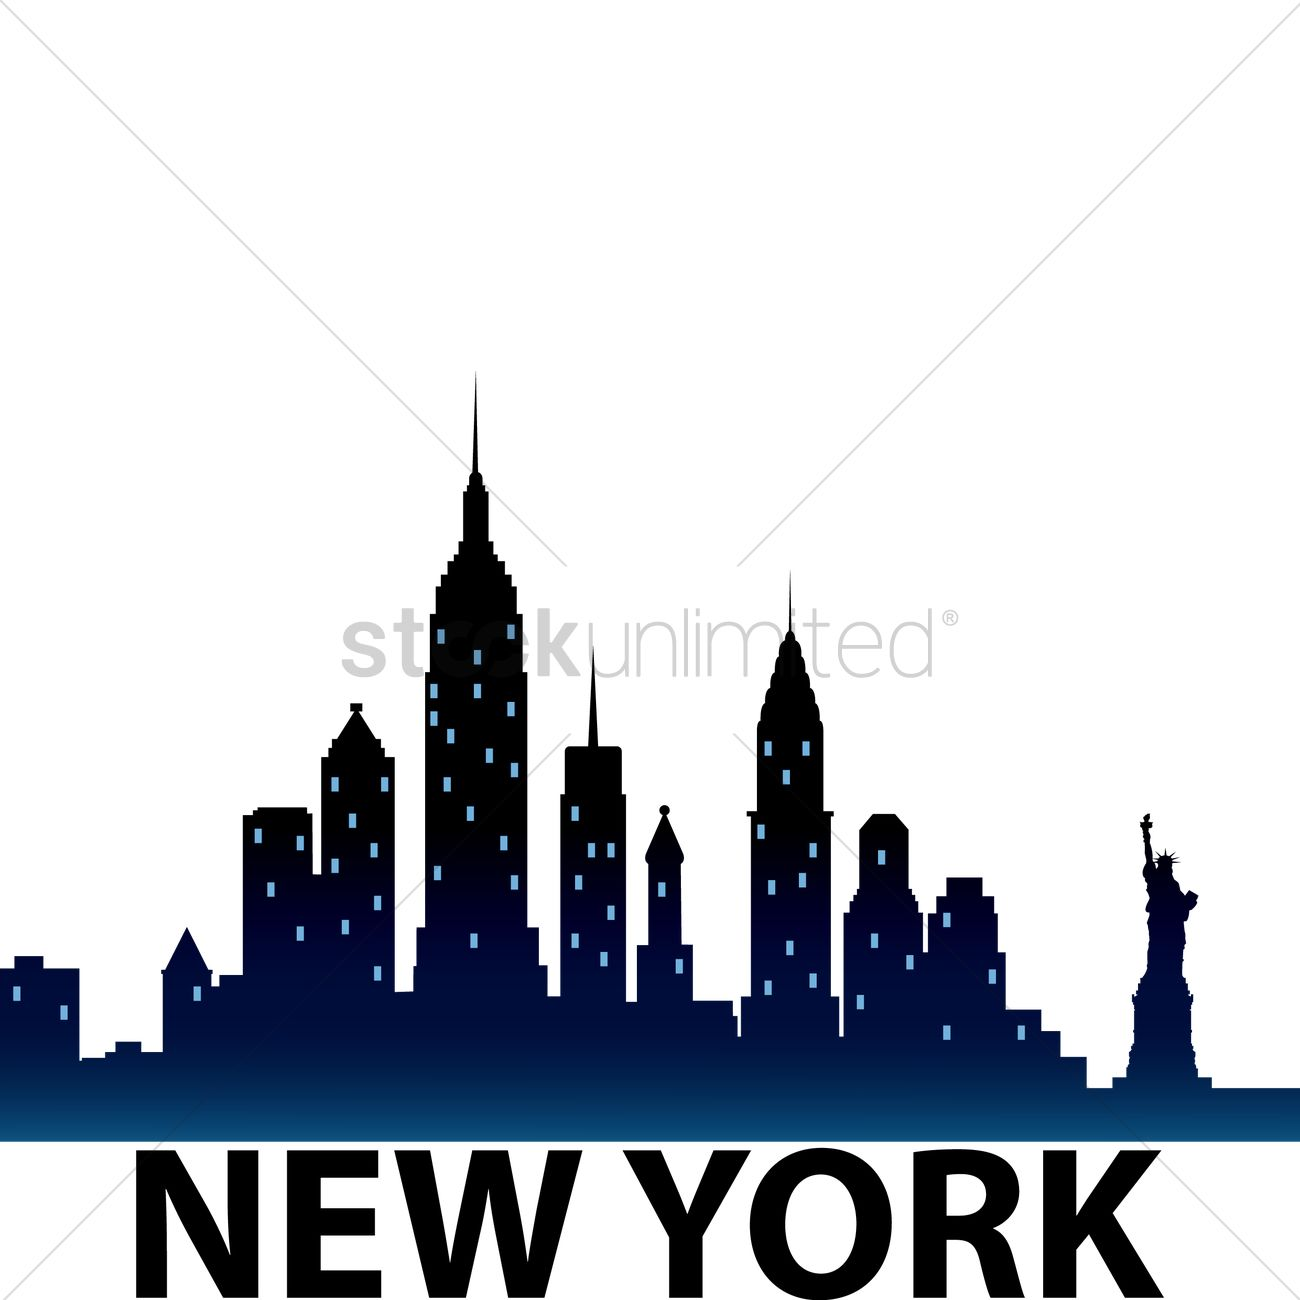 1300x1300 New York City Skyline Silhouette Vector Image